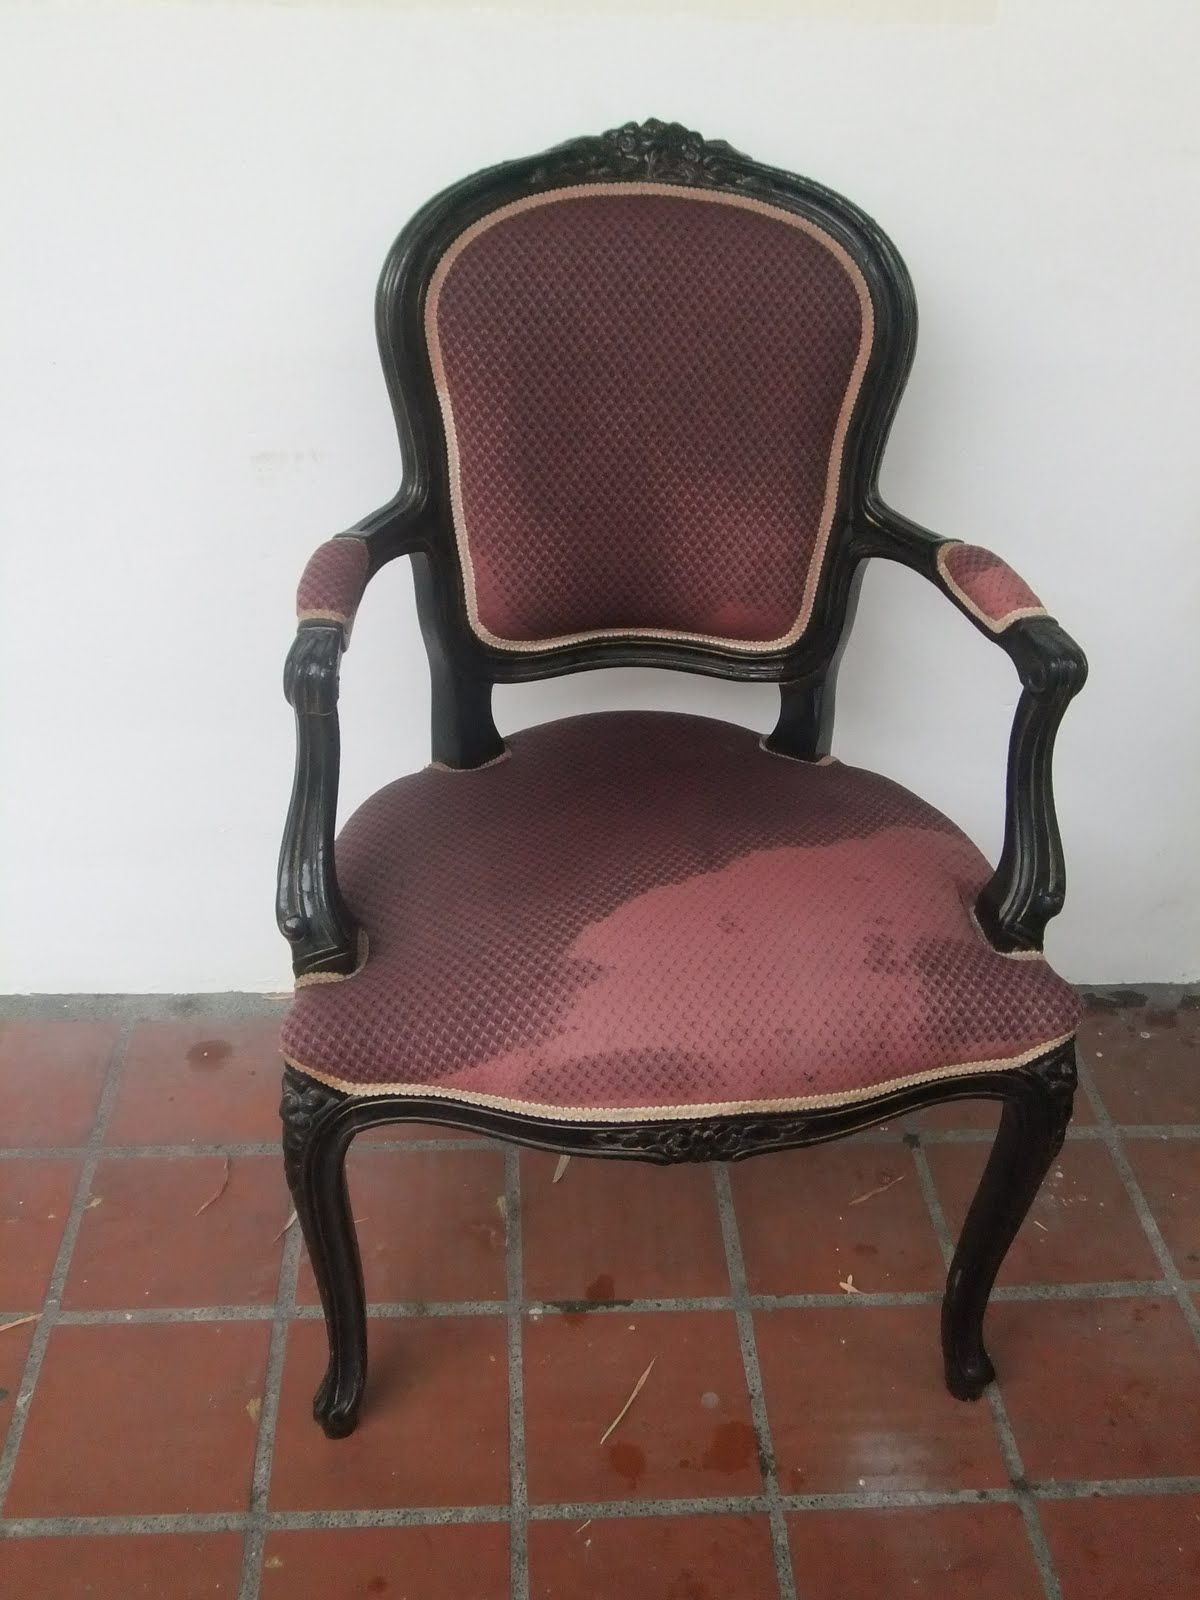 where to get chairs reupholstered tennis court furniture continued second charm